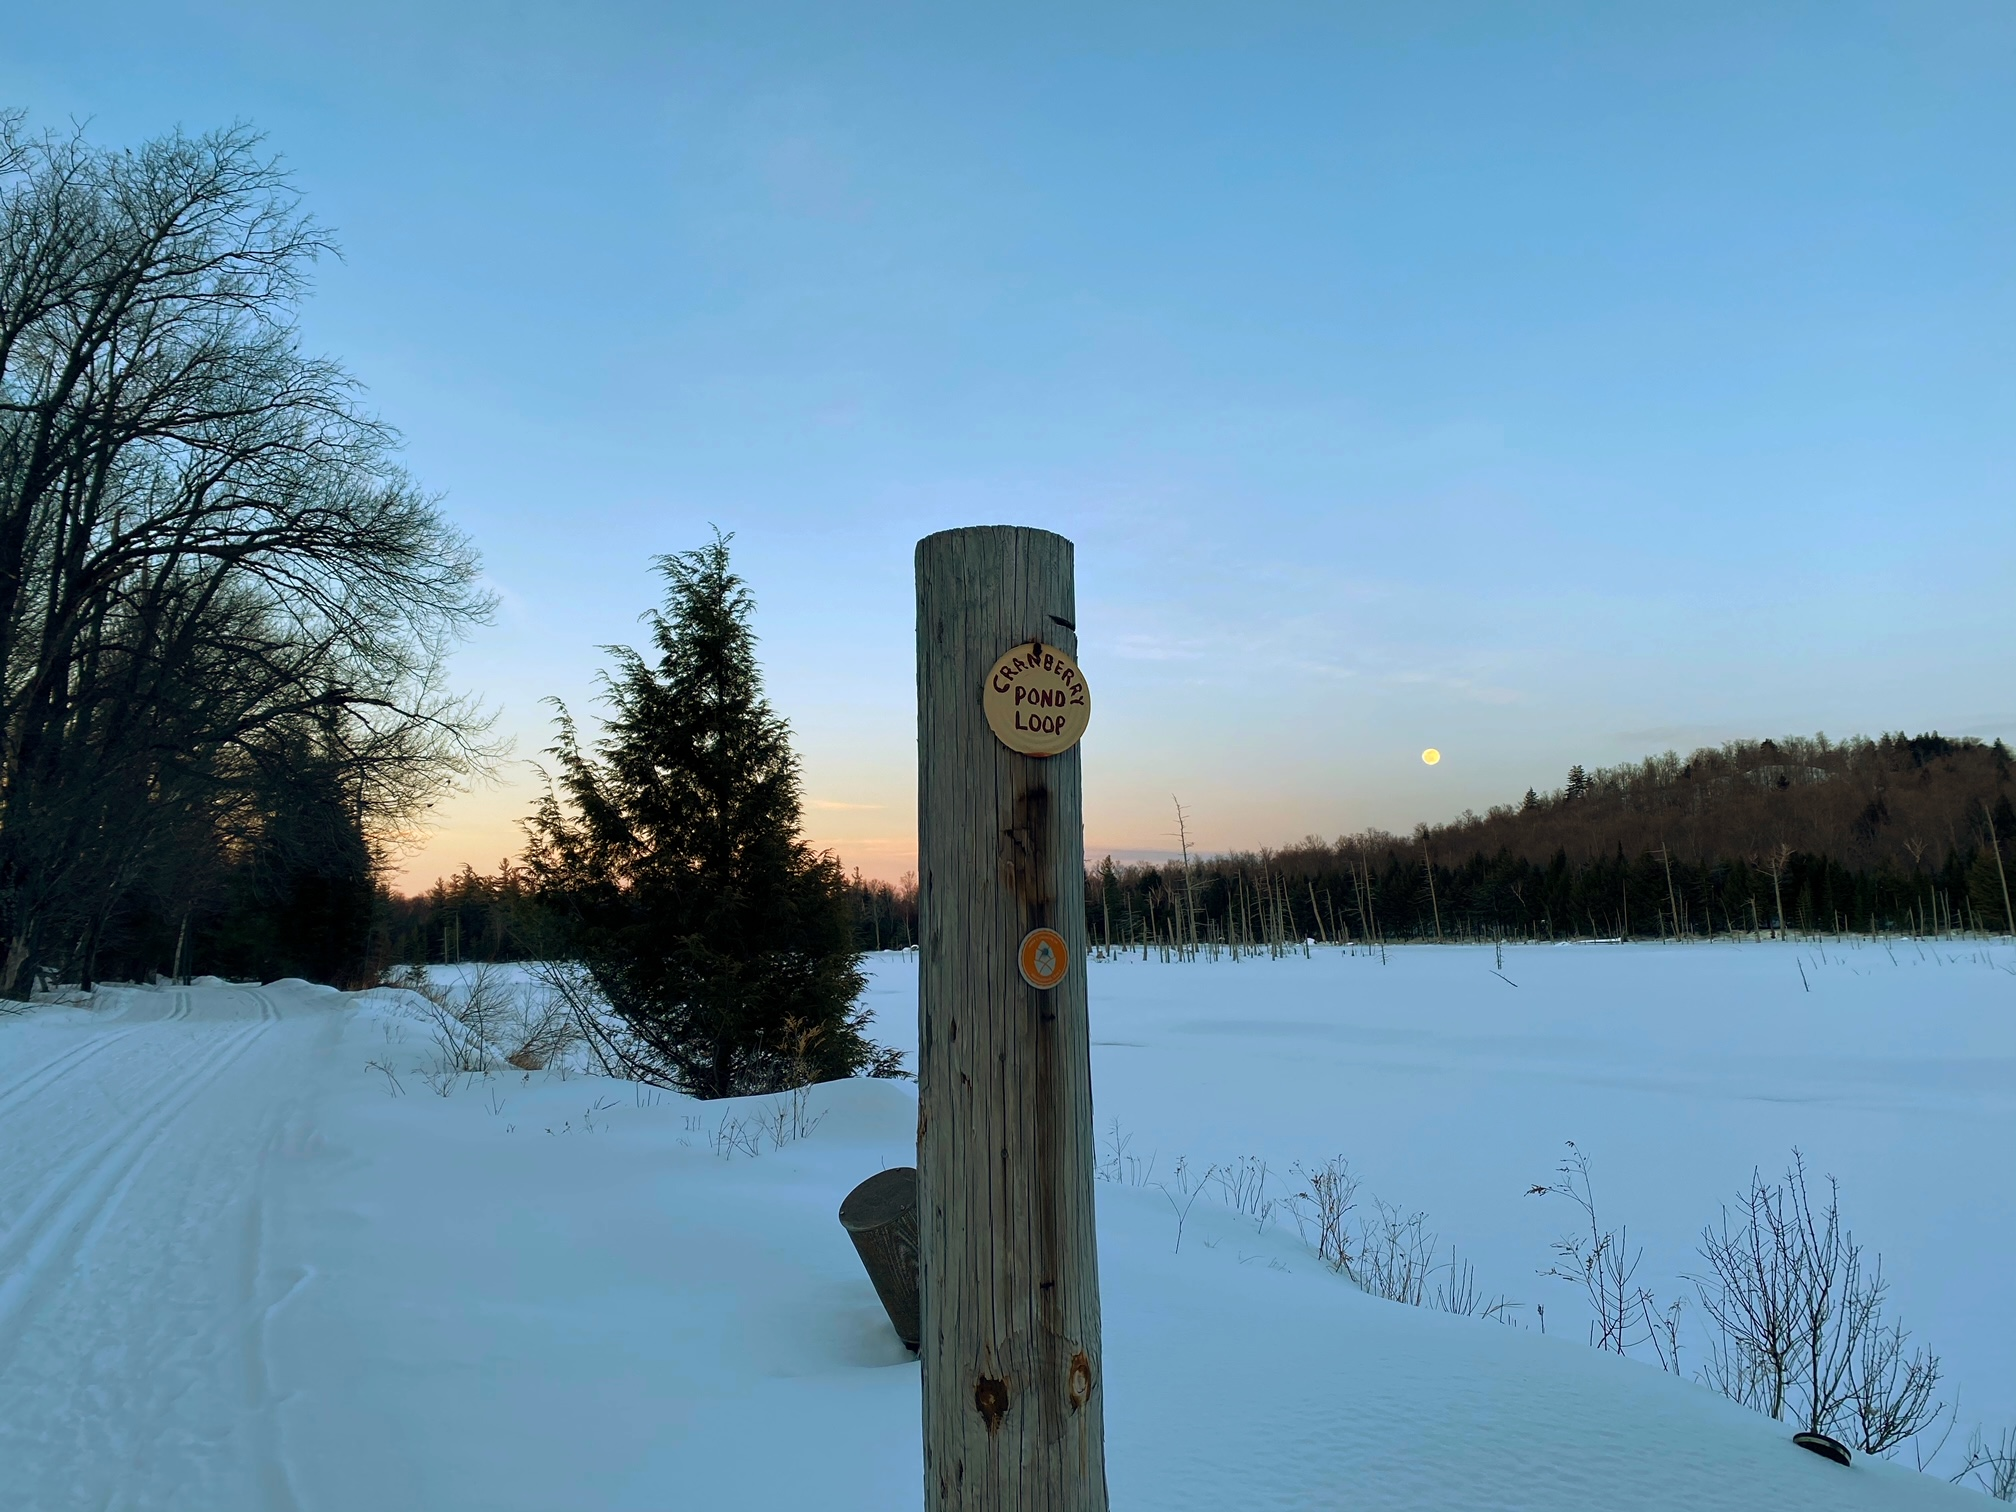 Beautiful views along the Cranberry Pond Trail.